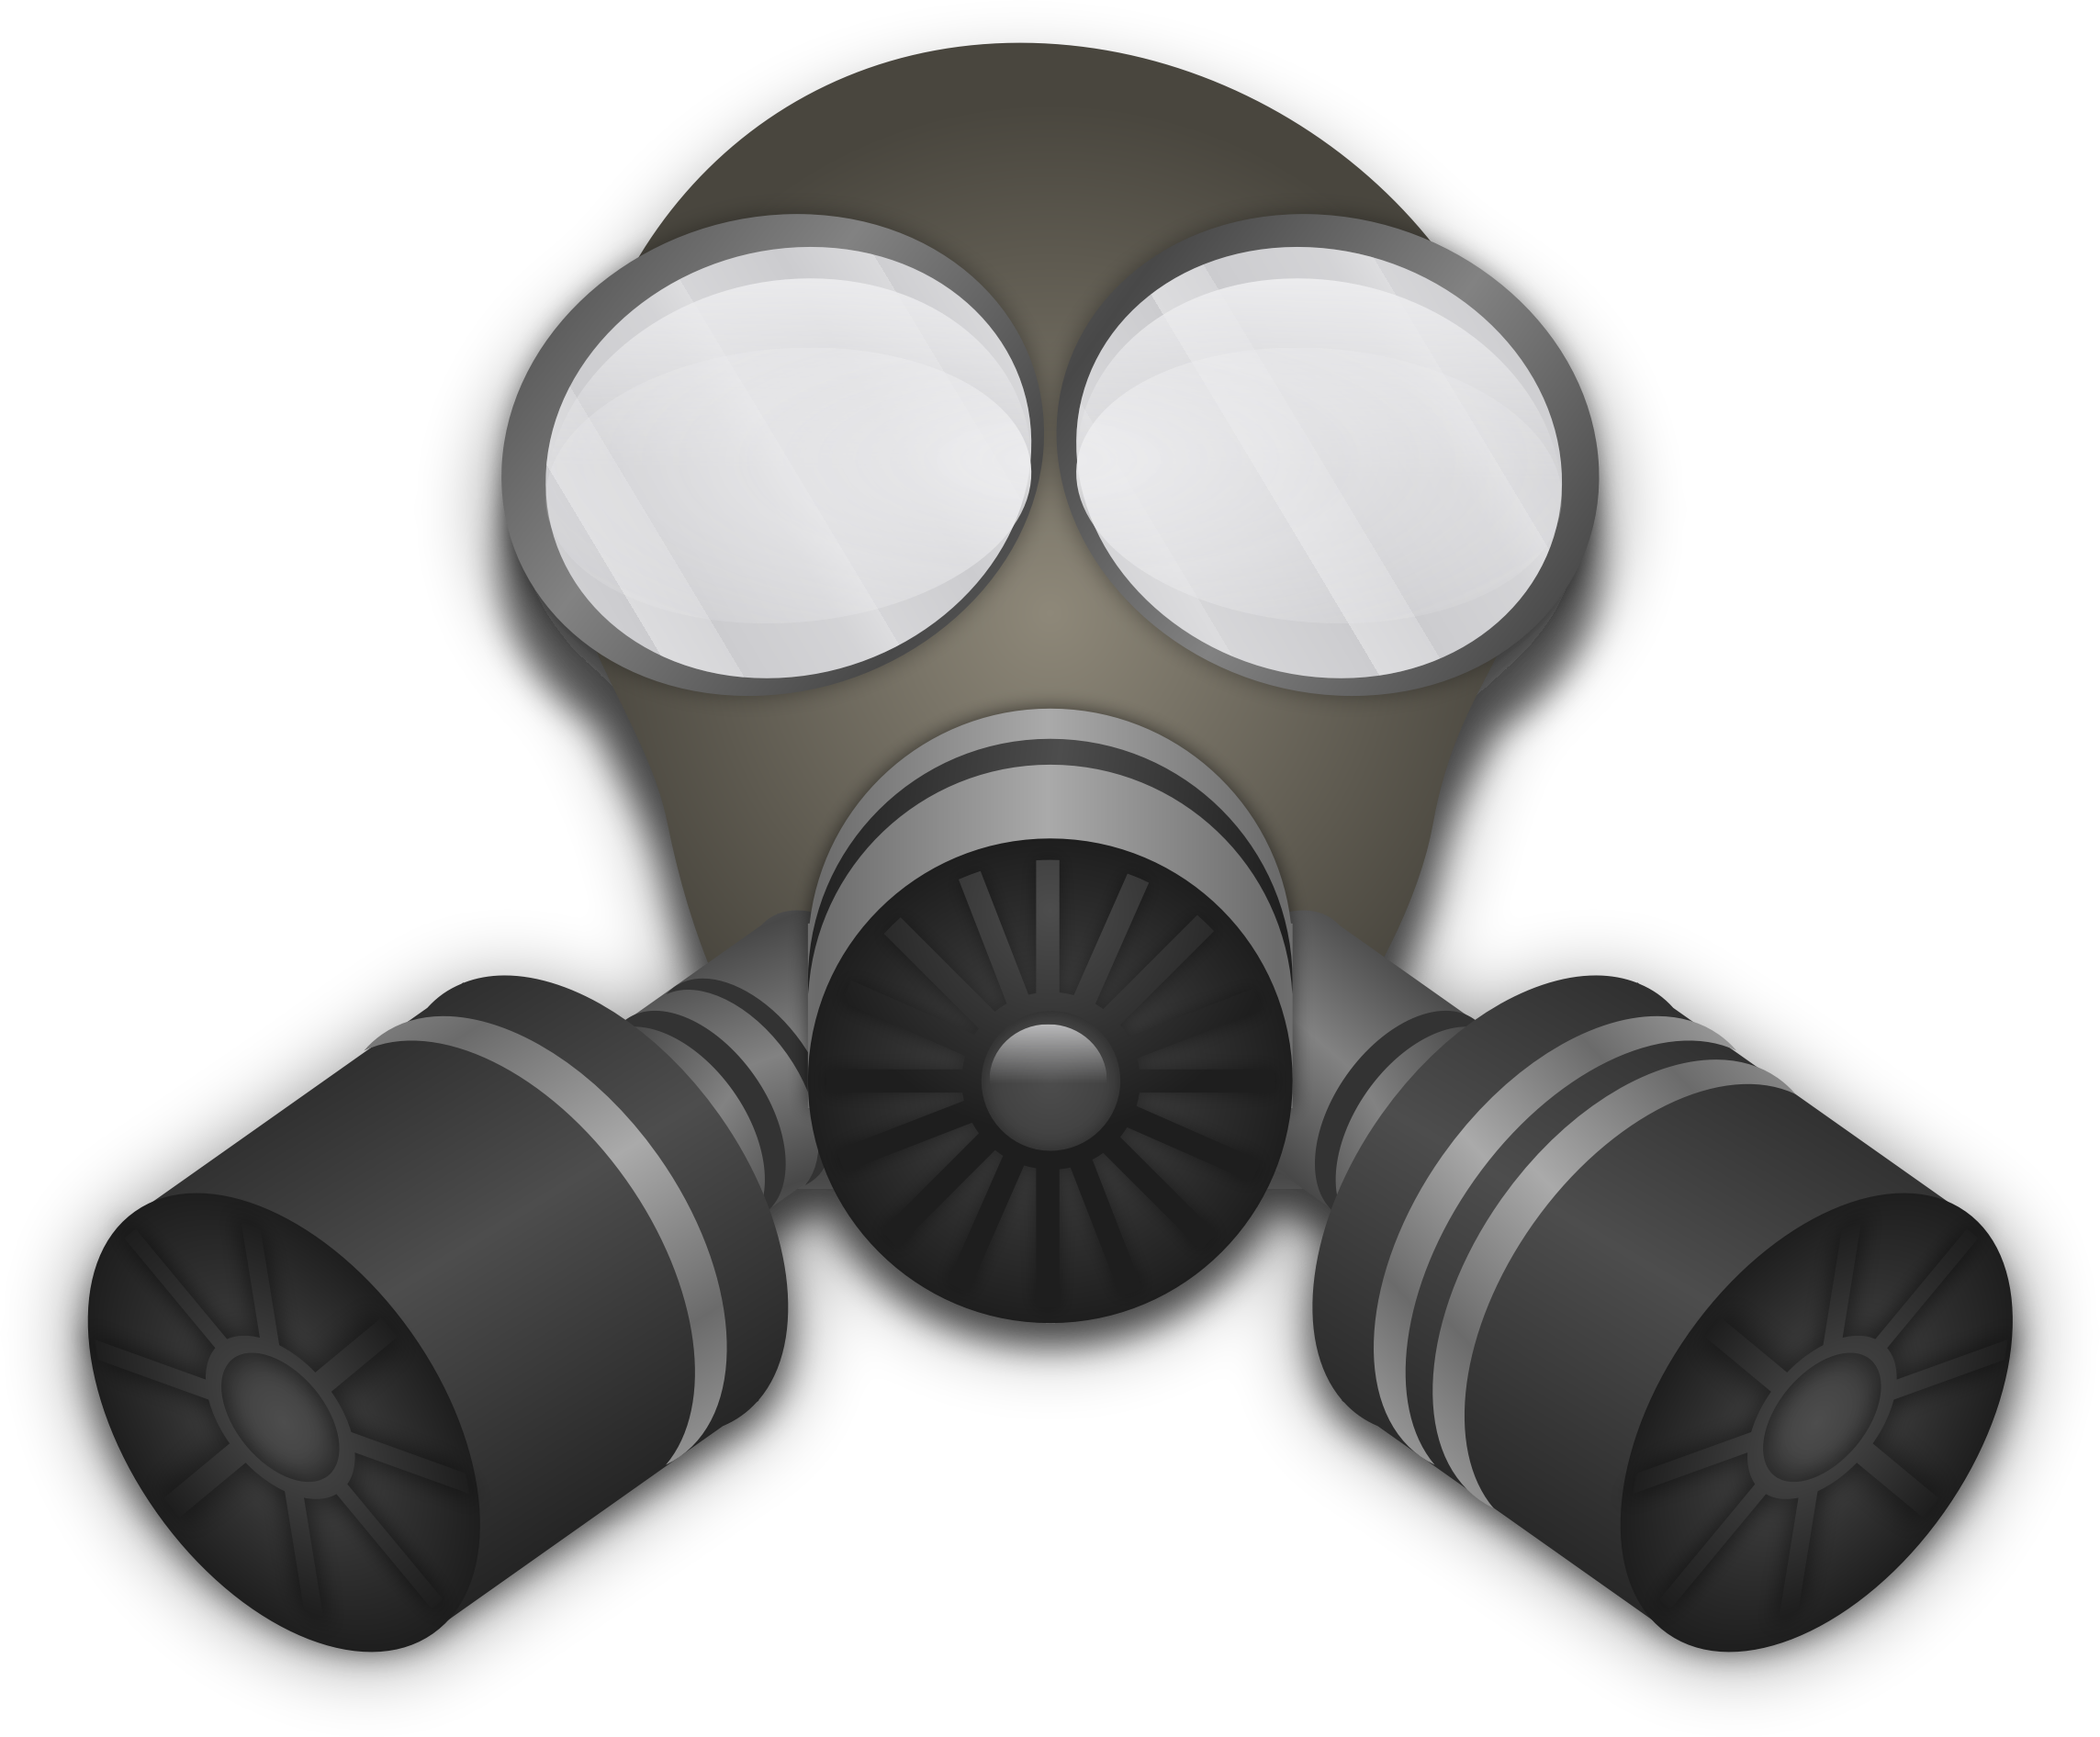 Mask png images transparent. Gas clipart gas canister